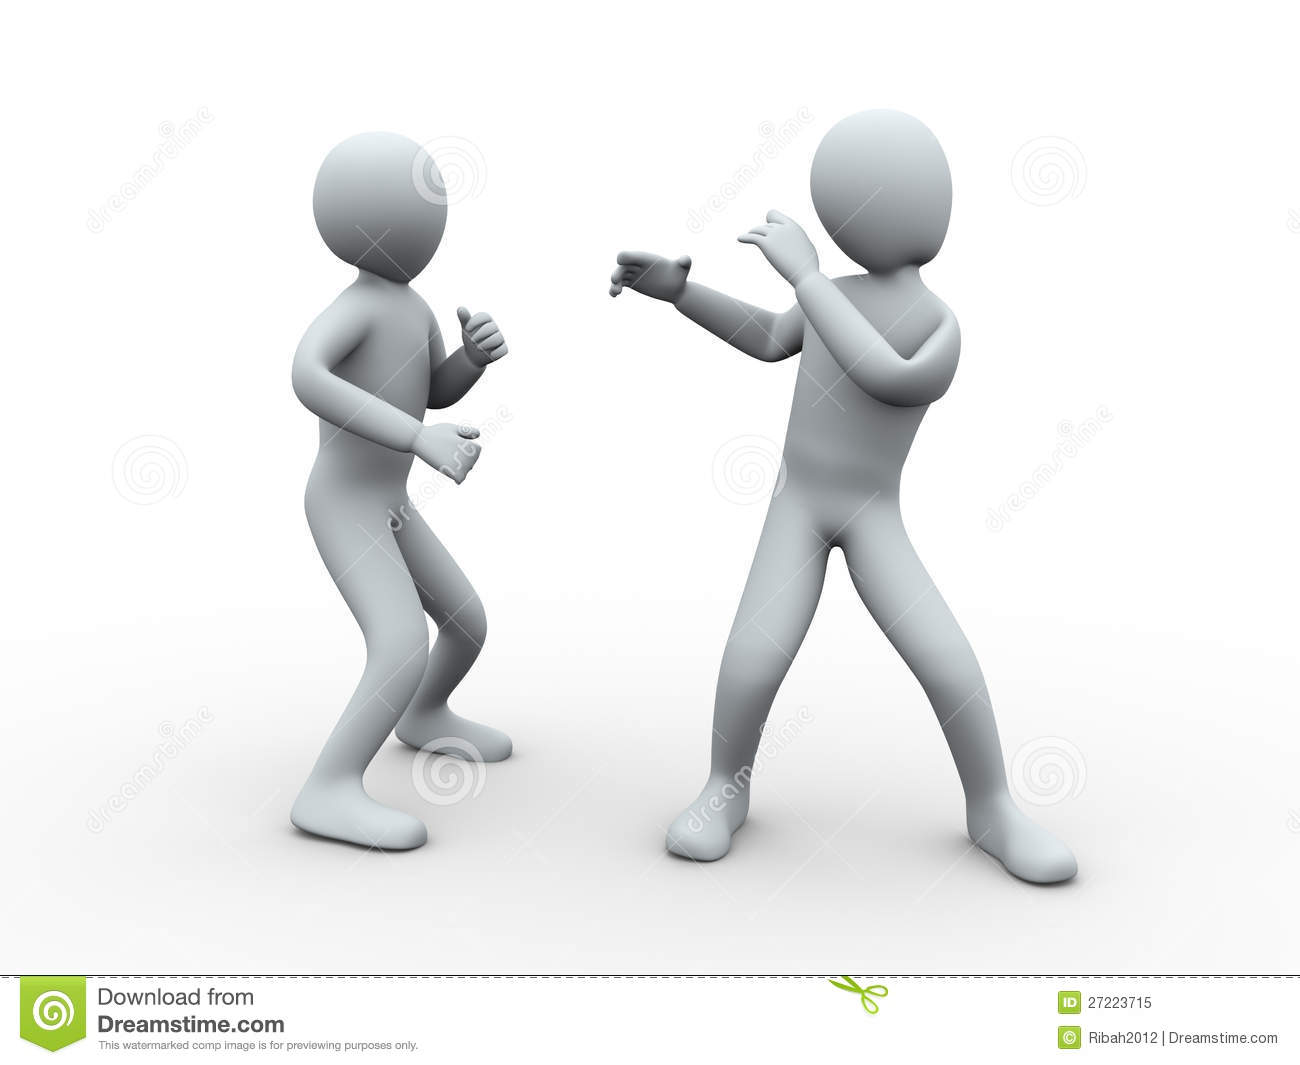 Two People Fighting Pictures to Pin on Pinterest - PinsDaddy